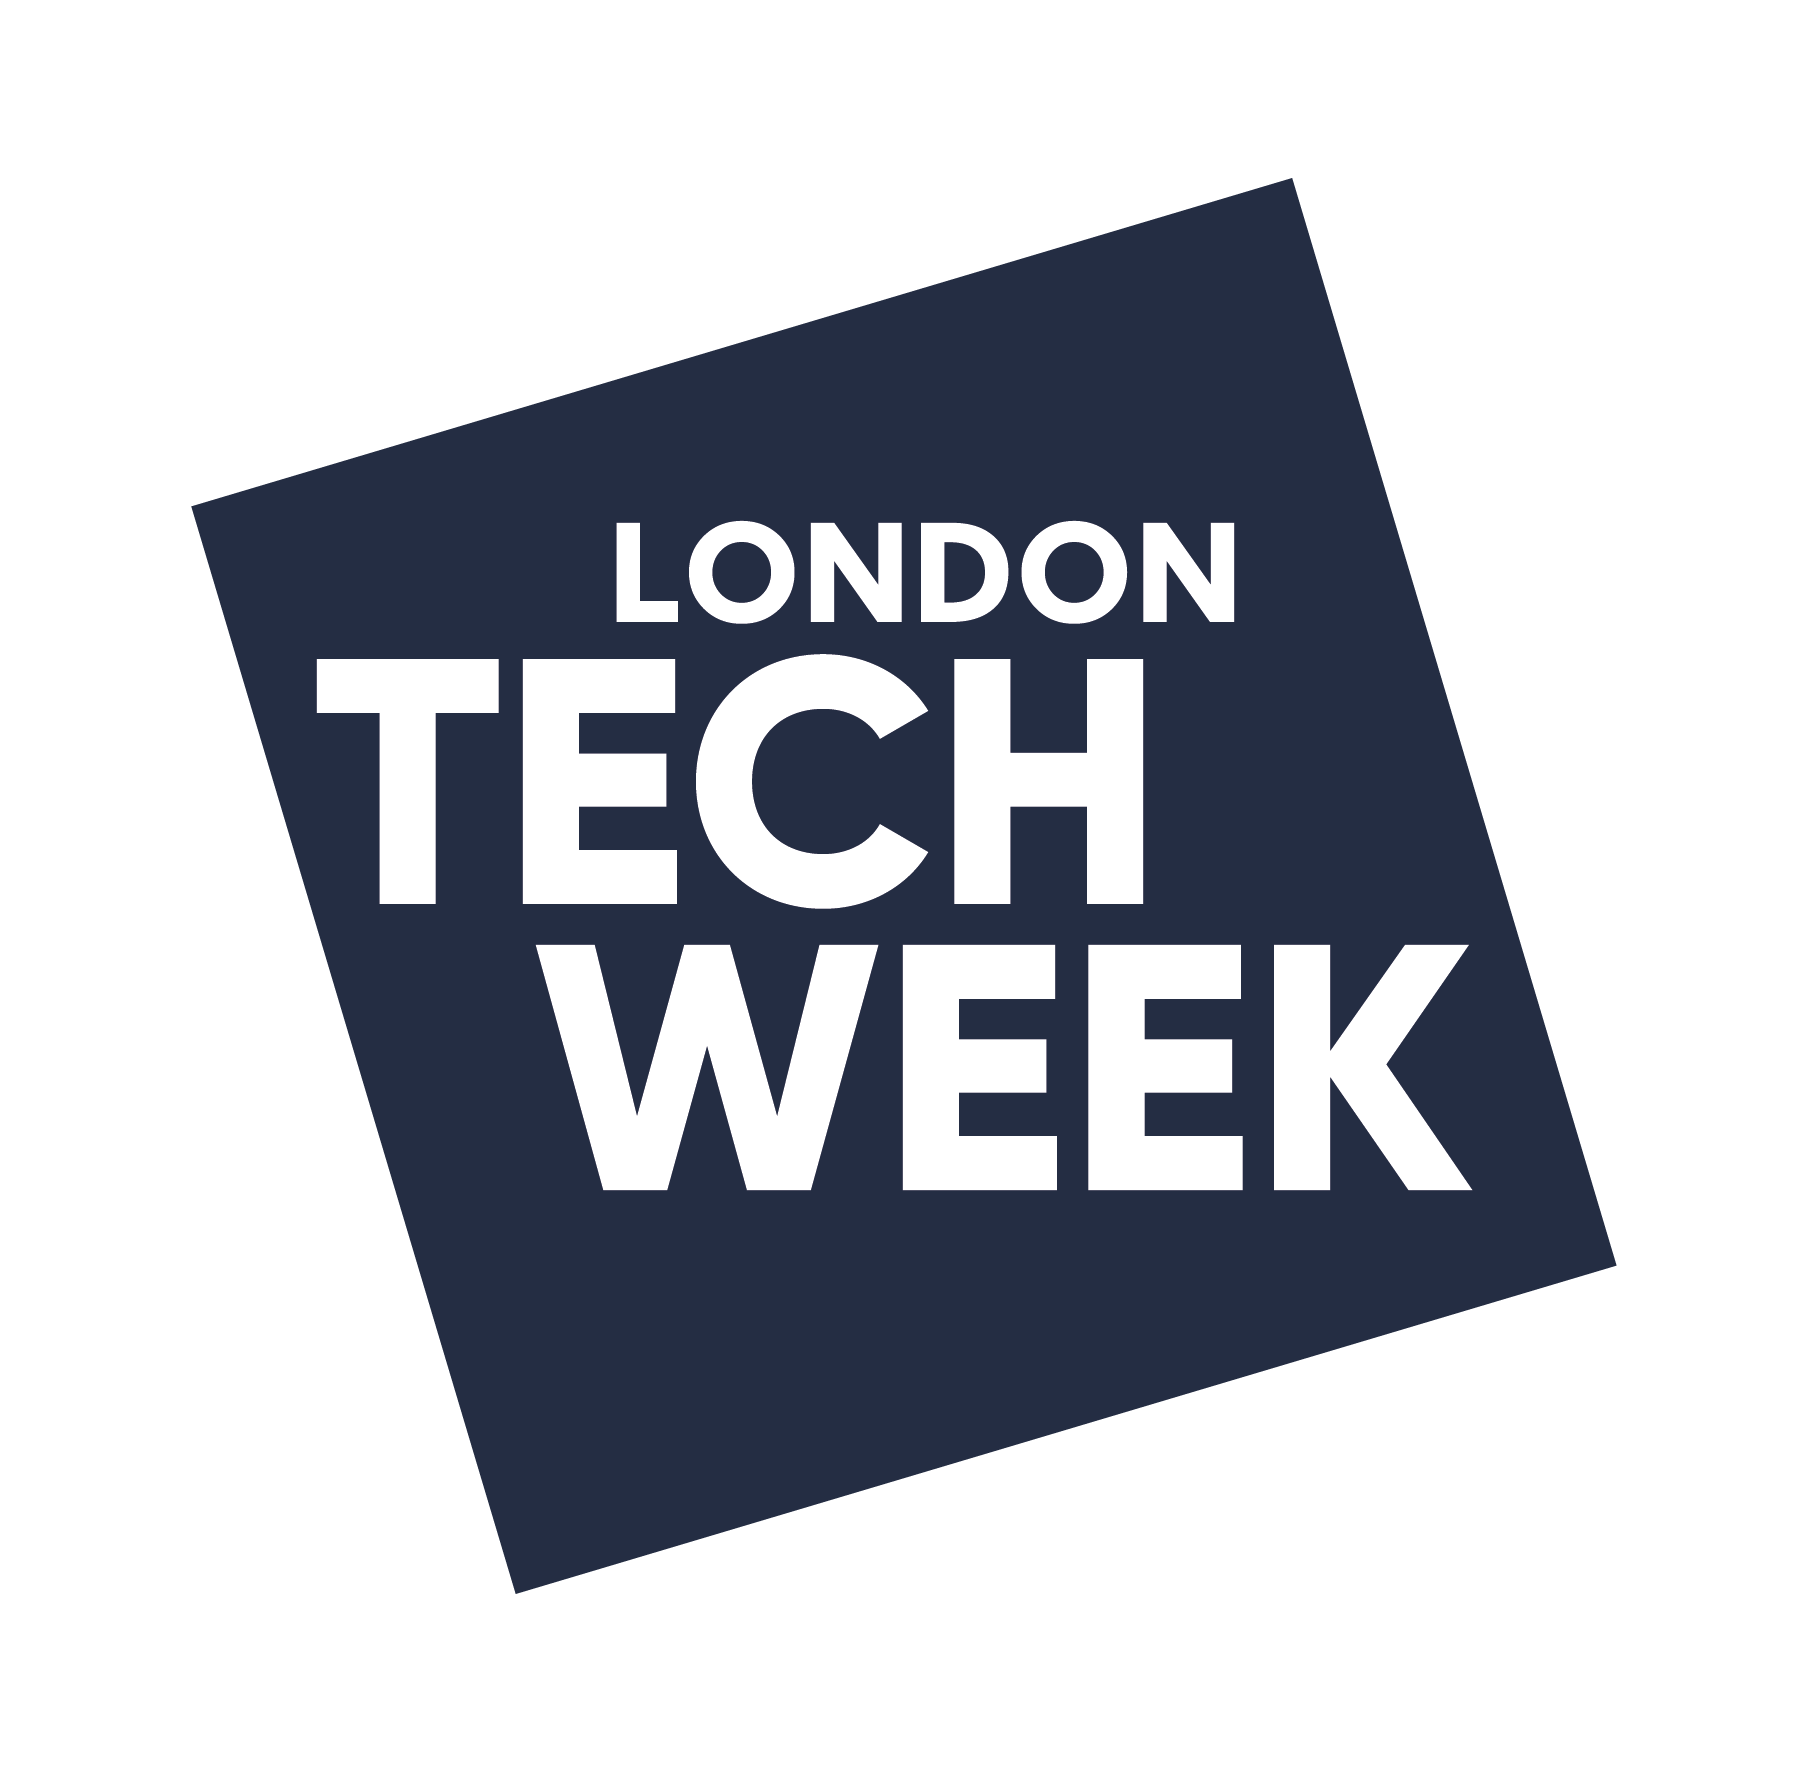 London Tech Week logo.png